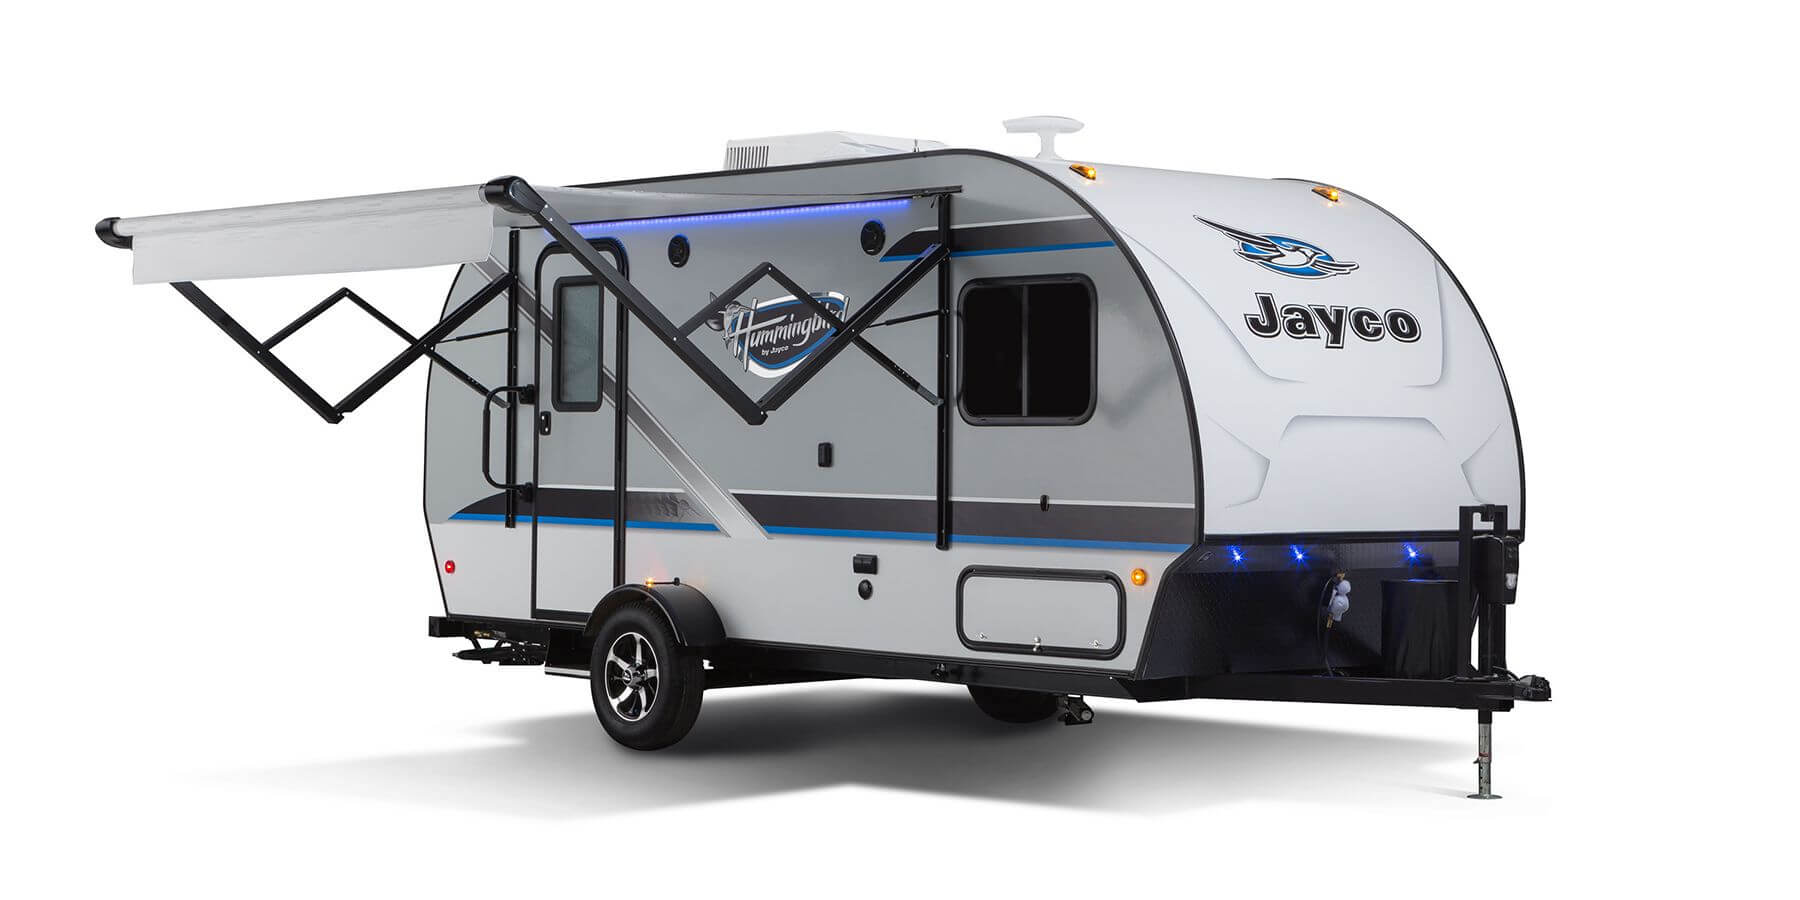 2017 Hummingbird By Jayco Roaming Times